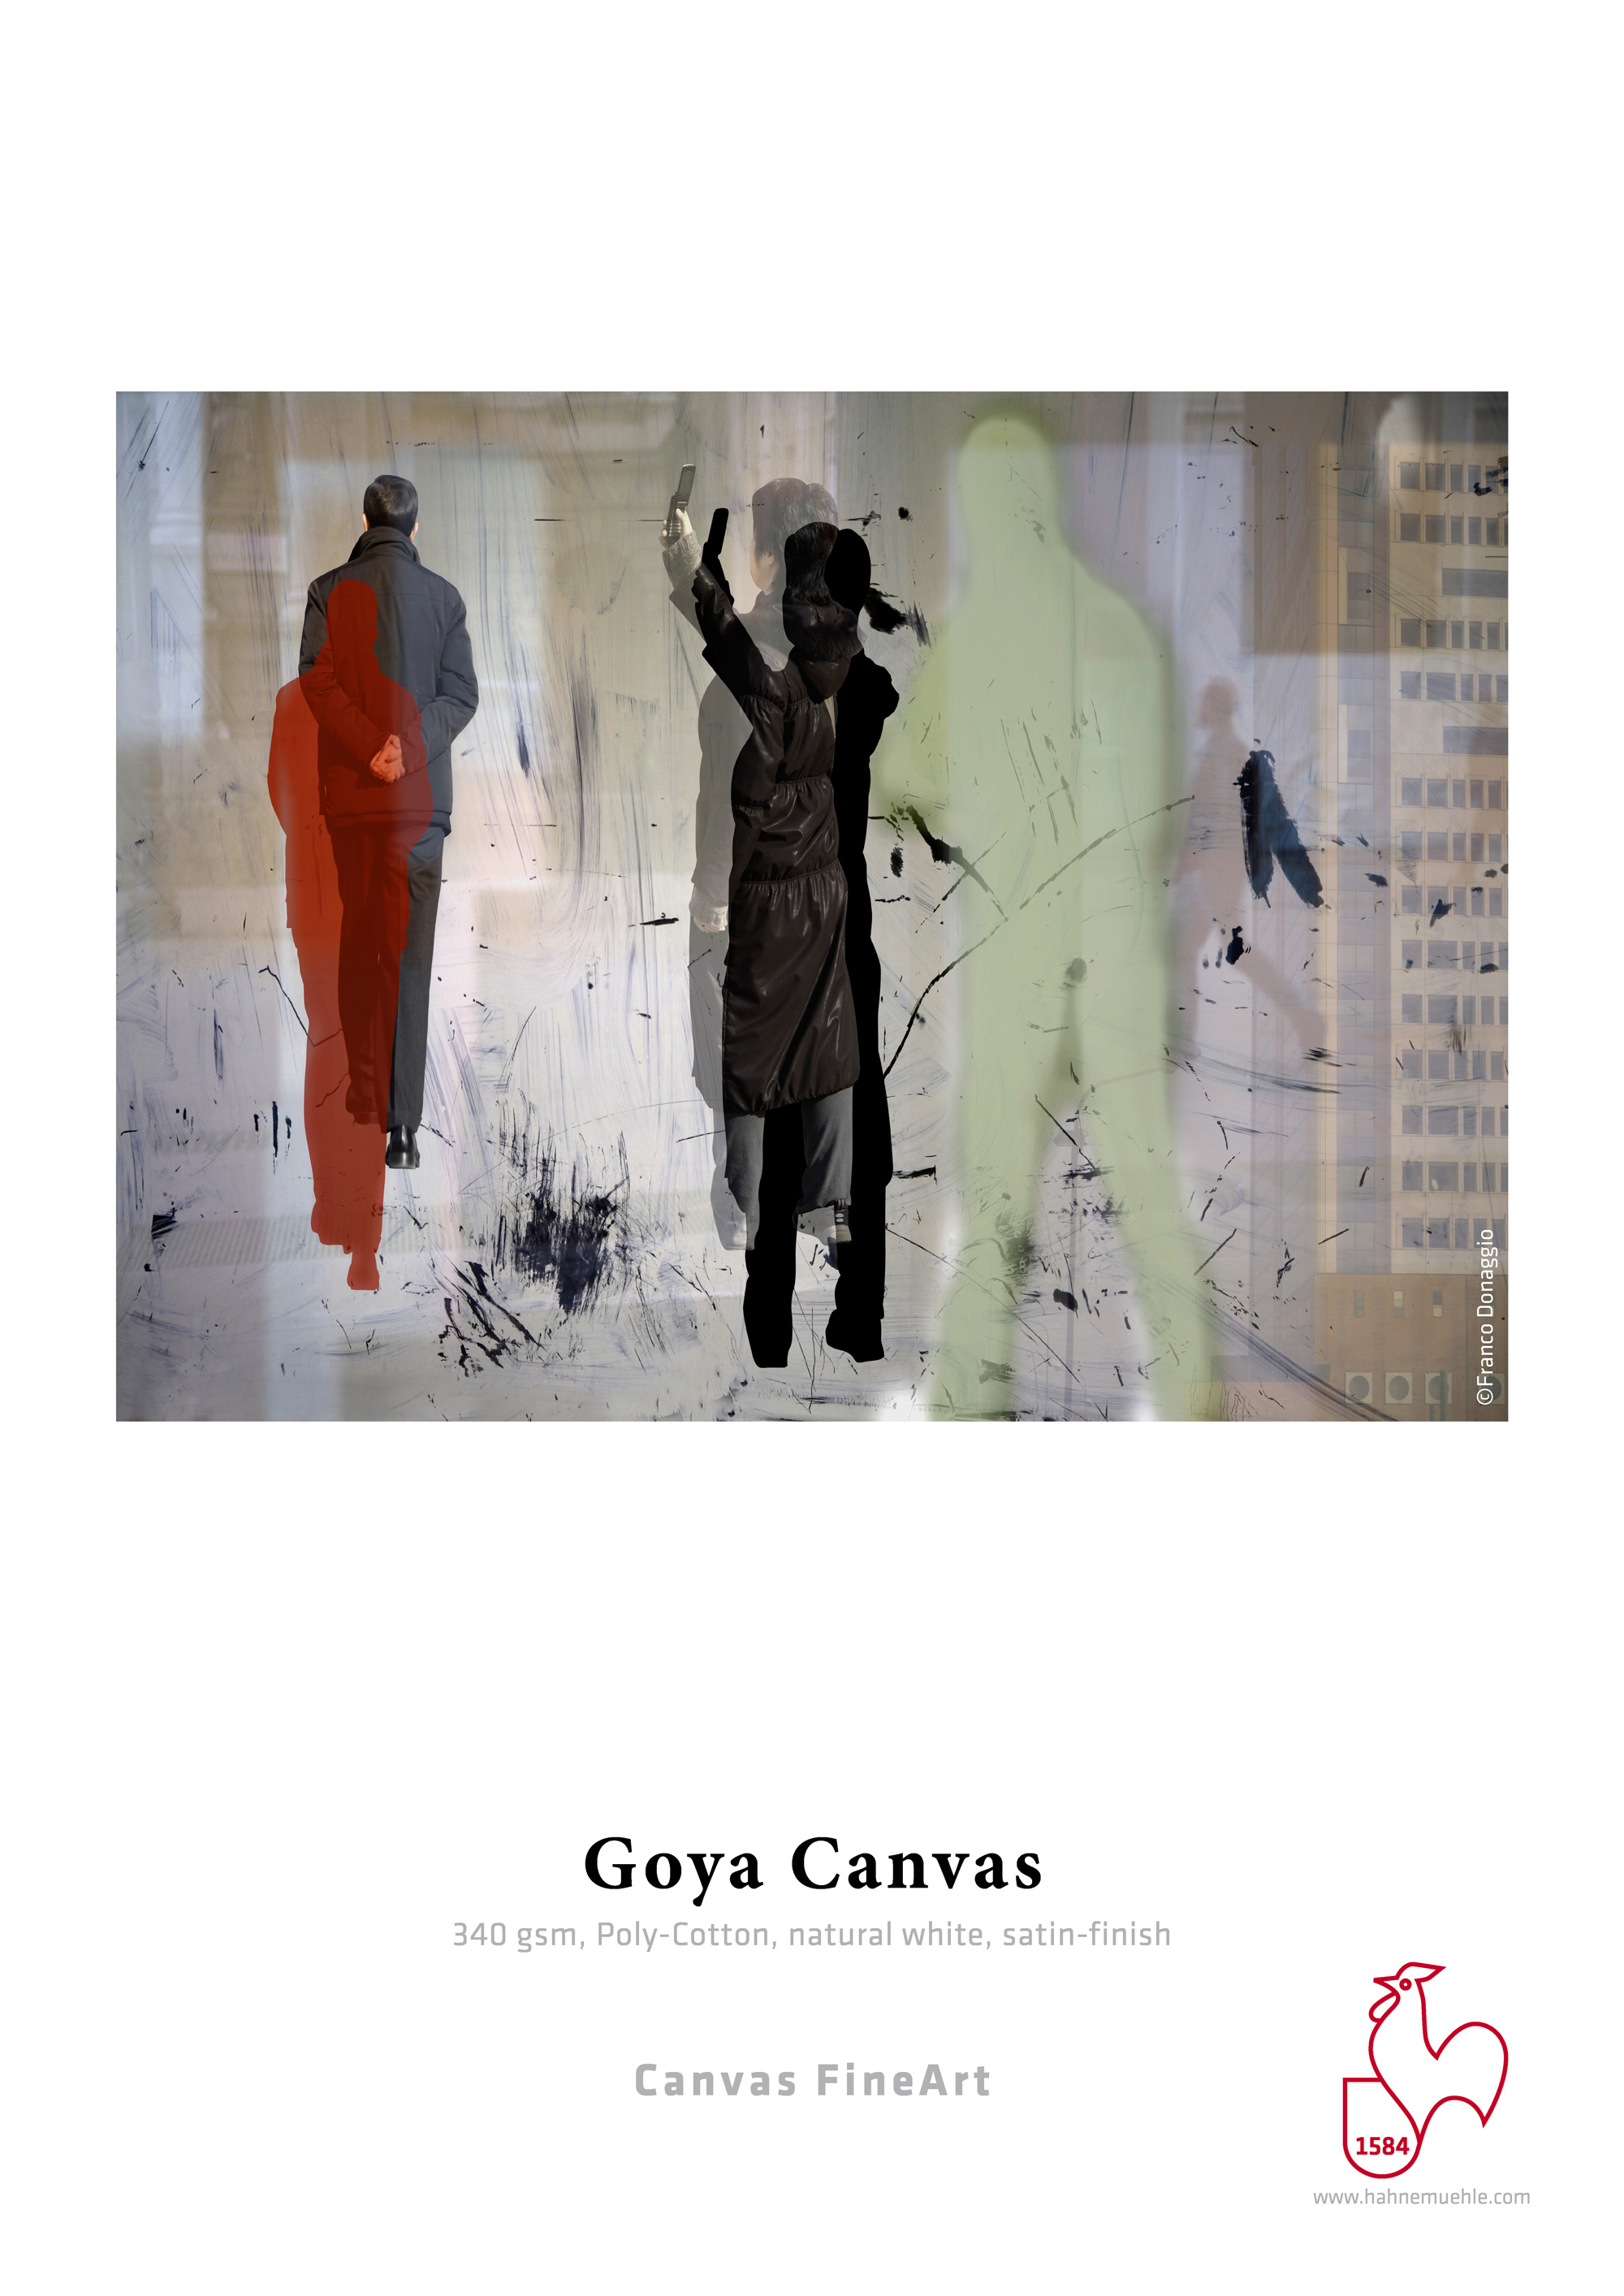 Goya Satin Canvas 340gsm